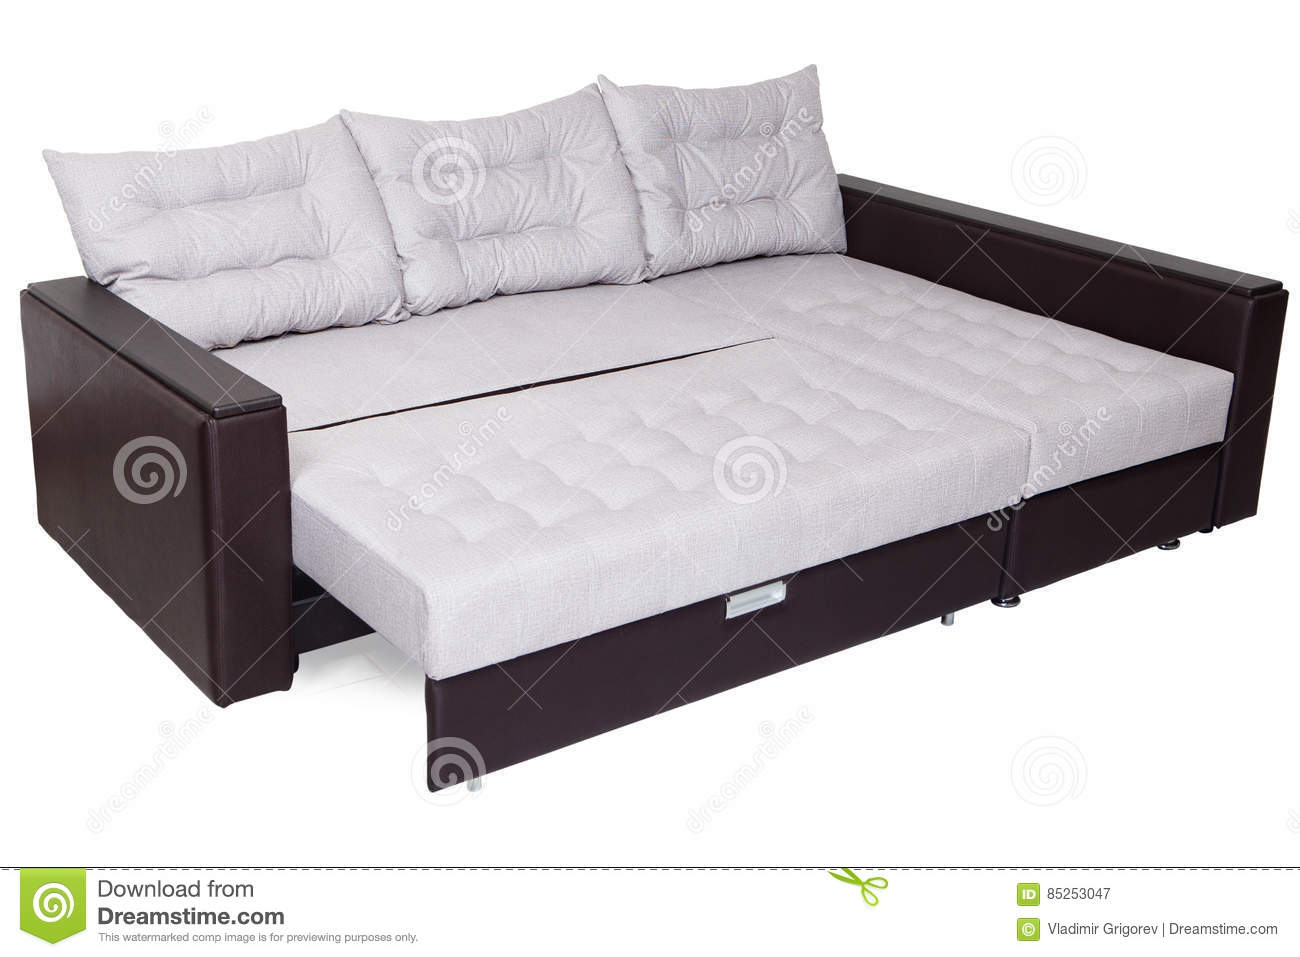 Sofa Bed In Dreams Upholstered Background Stock Photo Cartoondealer